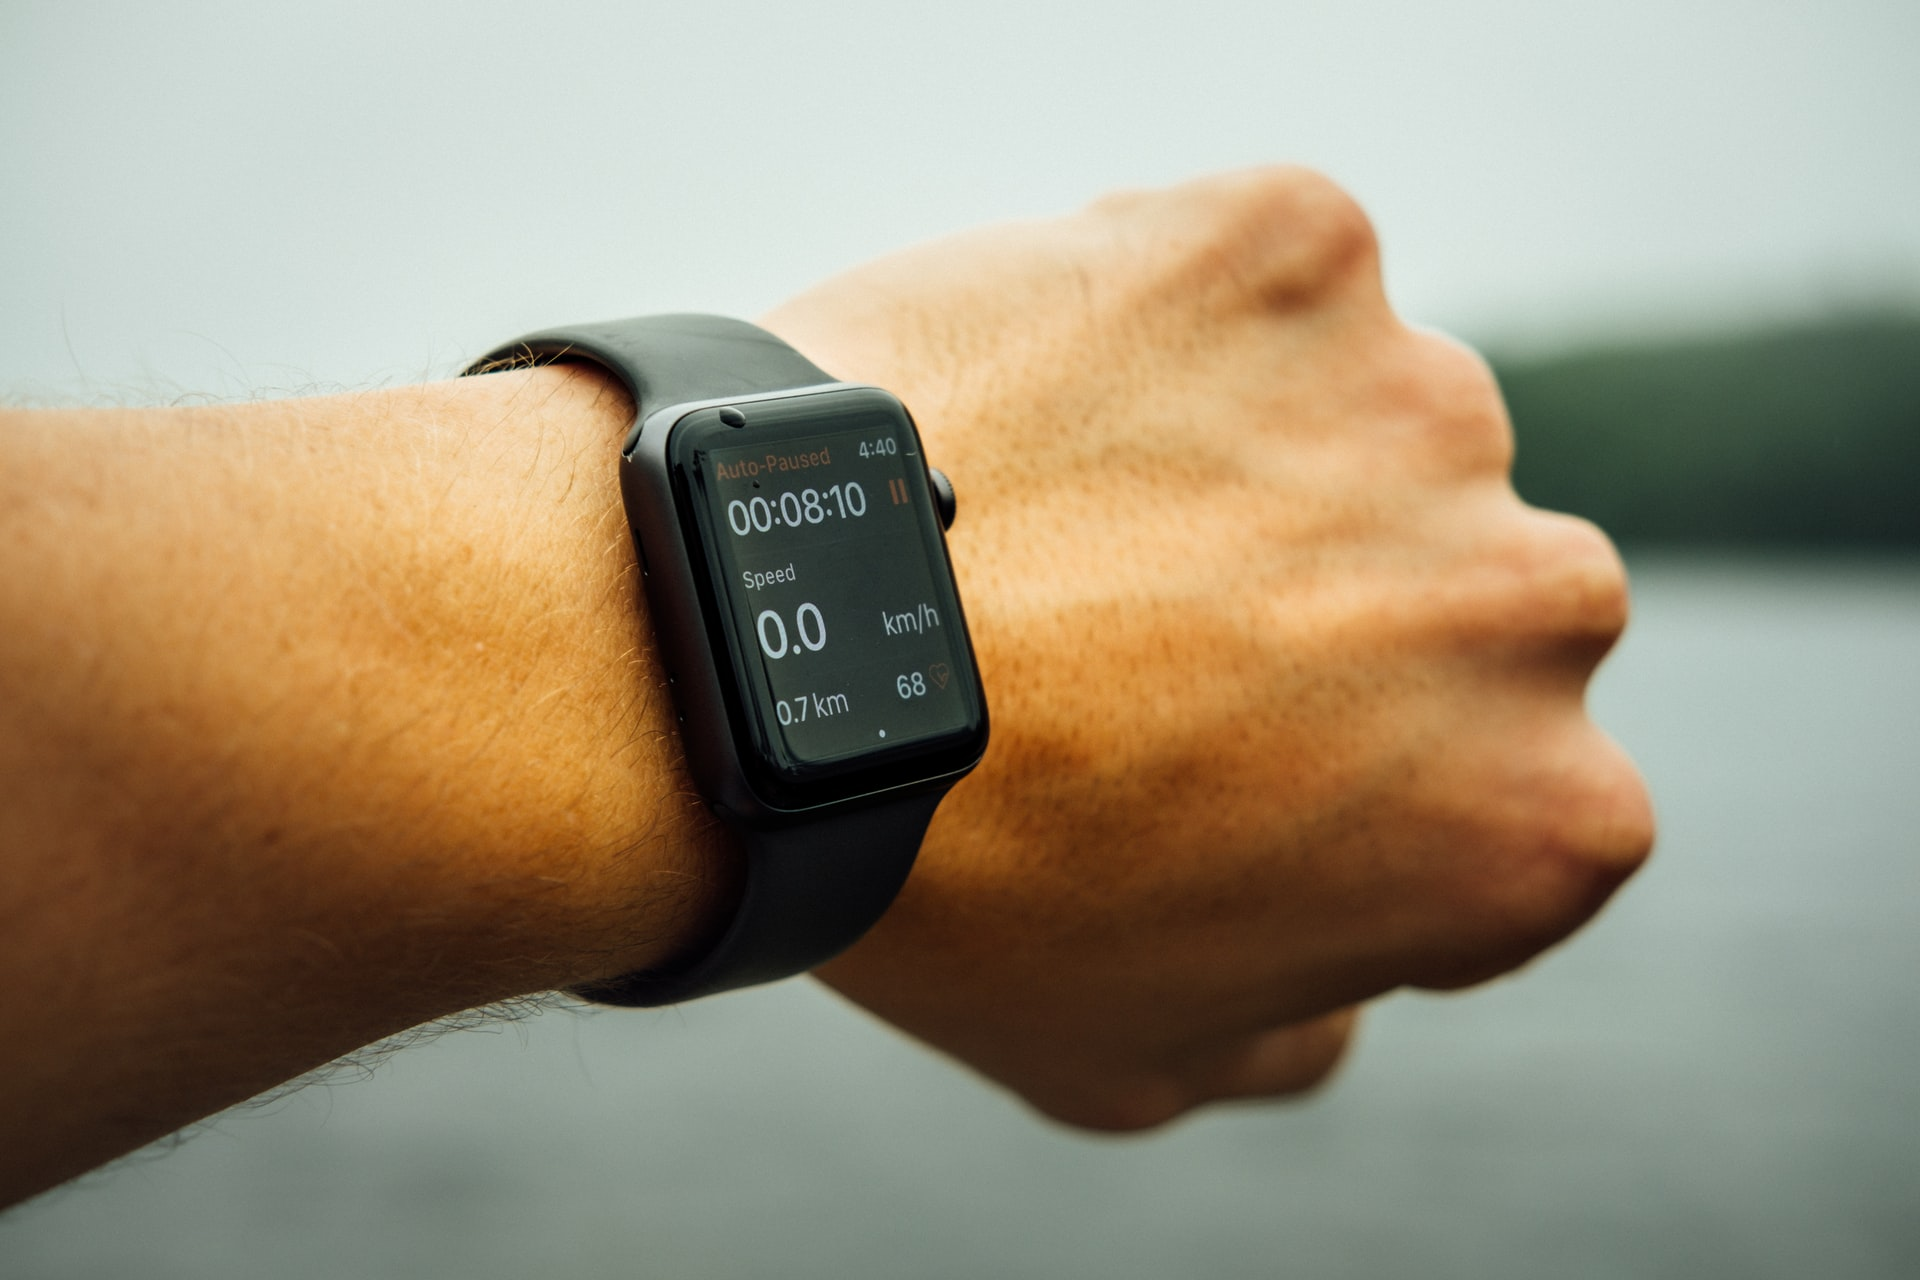 Global Consumer Spend on Health and Fitness Apps Rose by 50% in 2020 brandspurng2